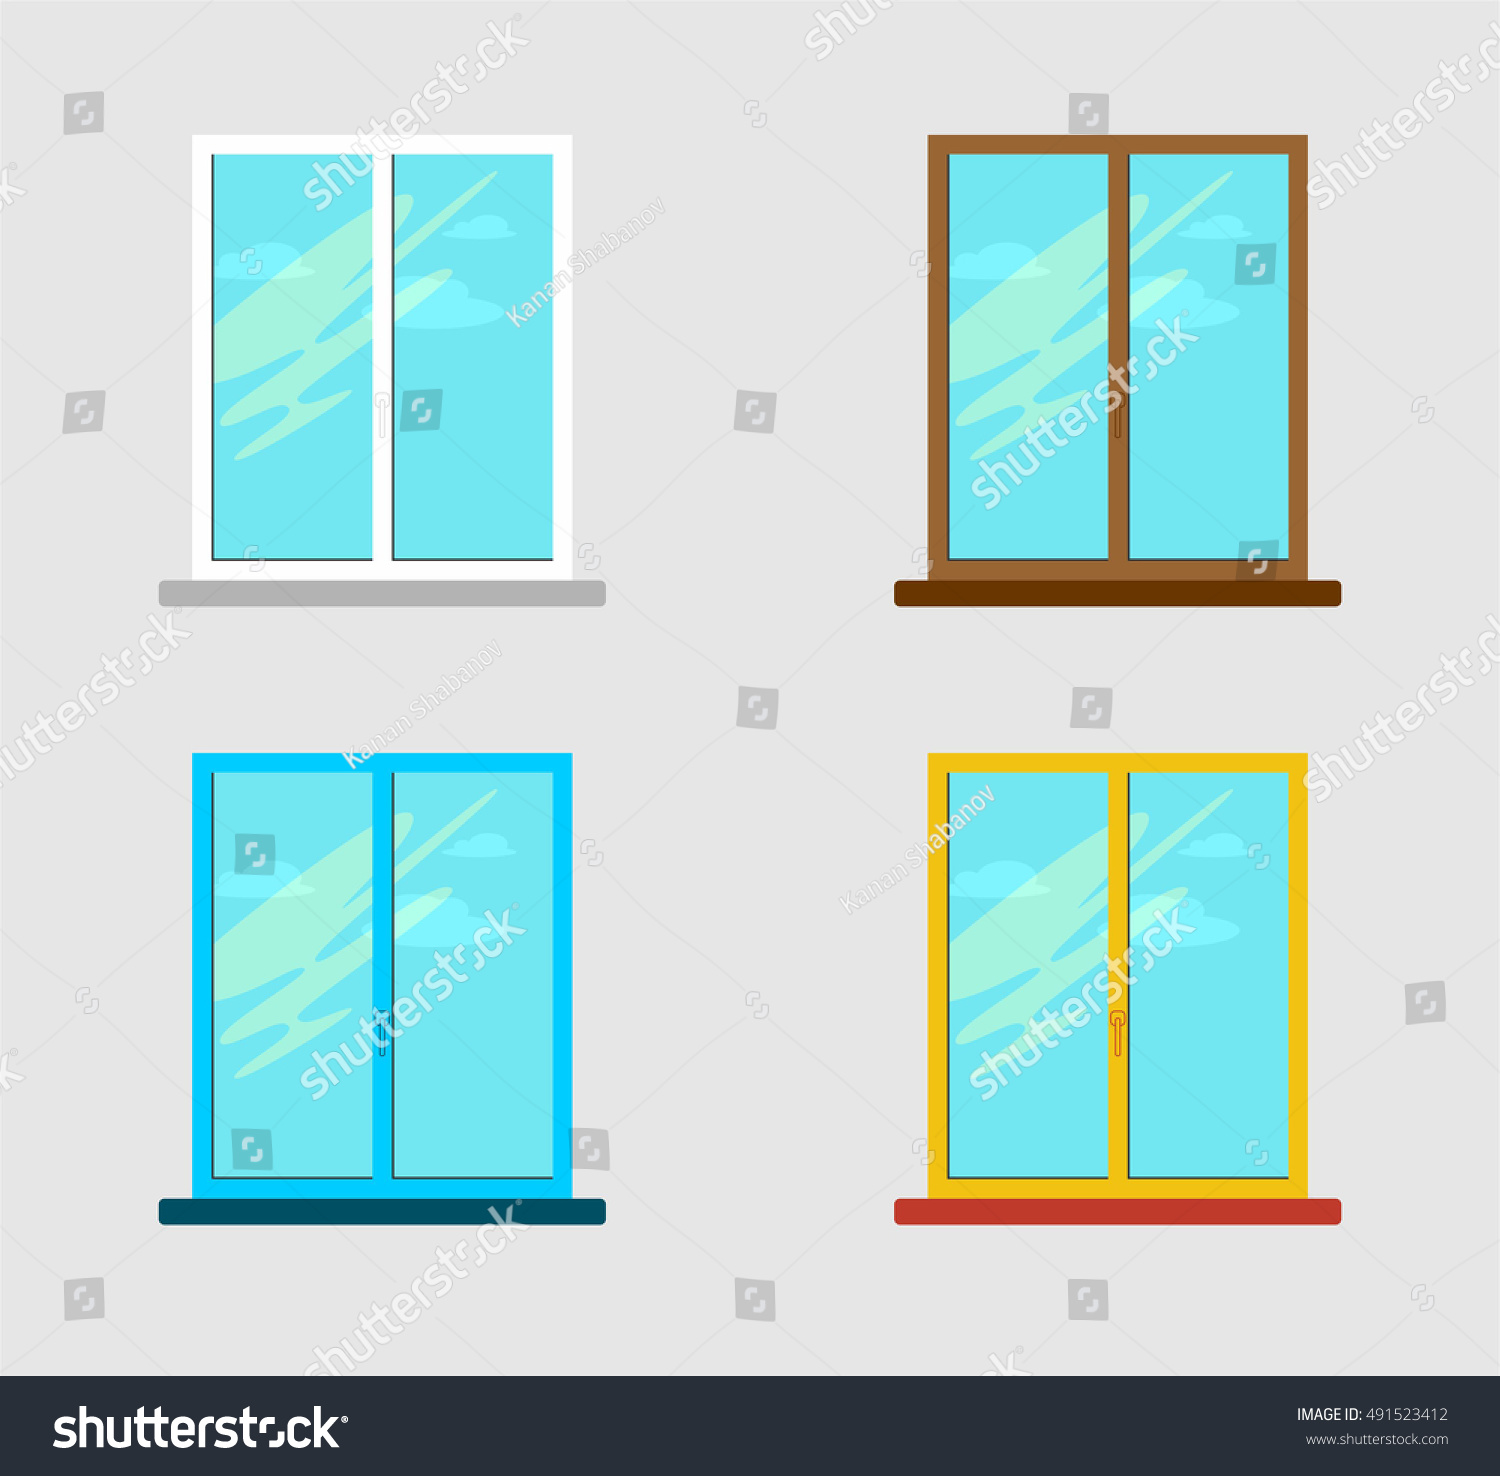 Vector illustration colorful windows flat design stock for Window design vector